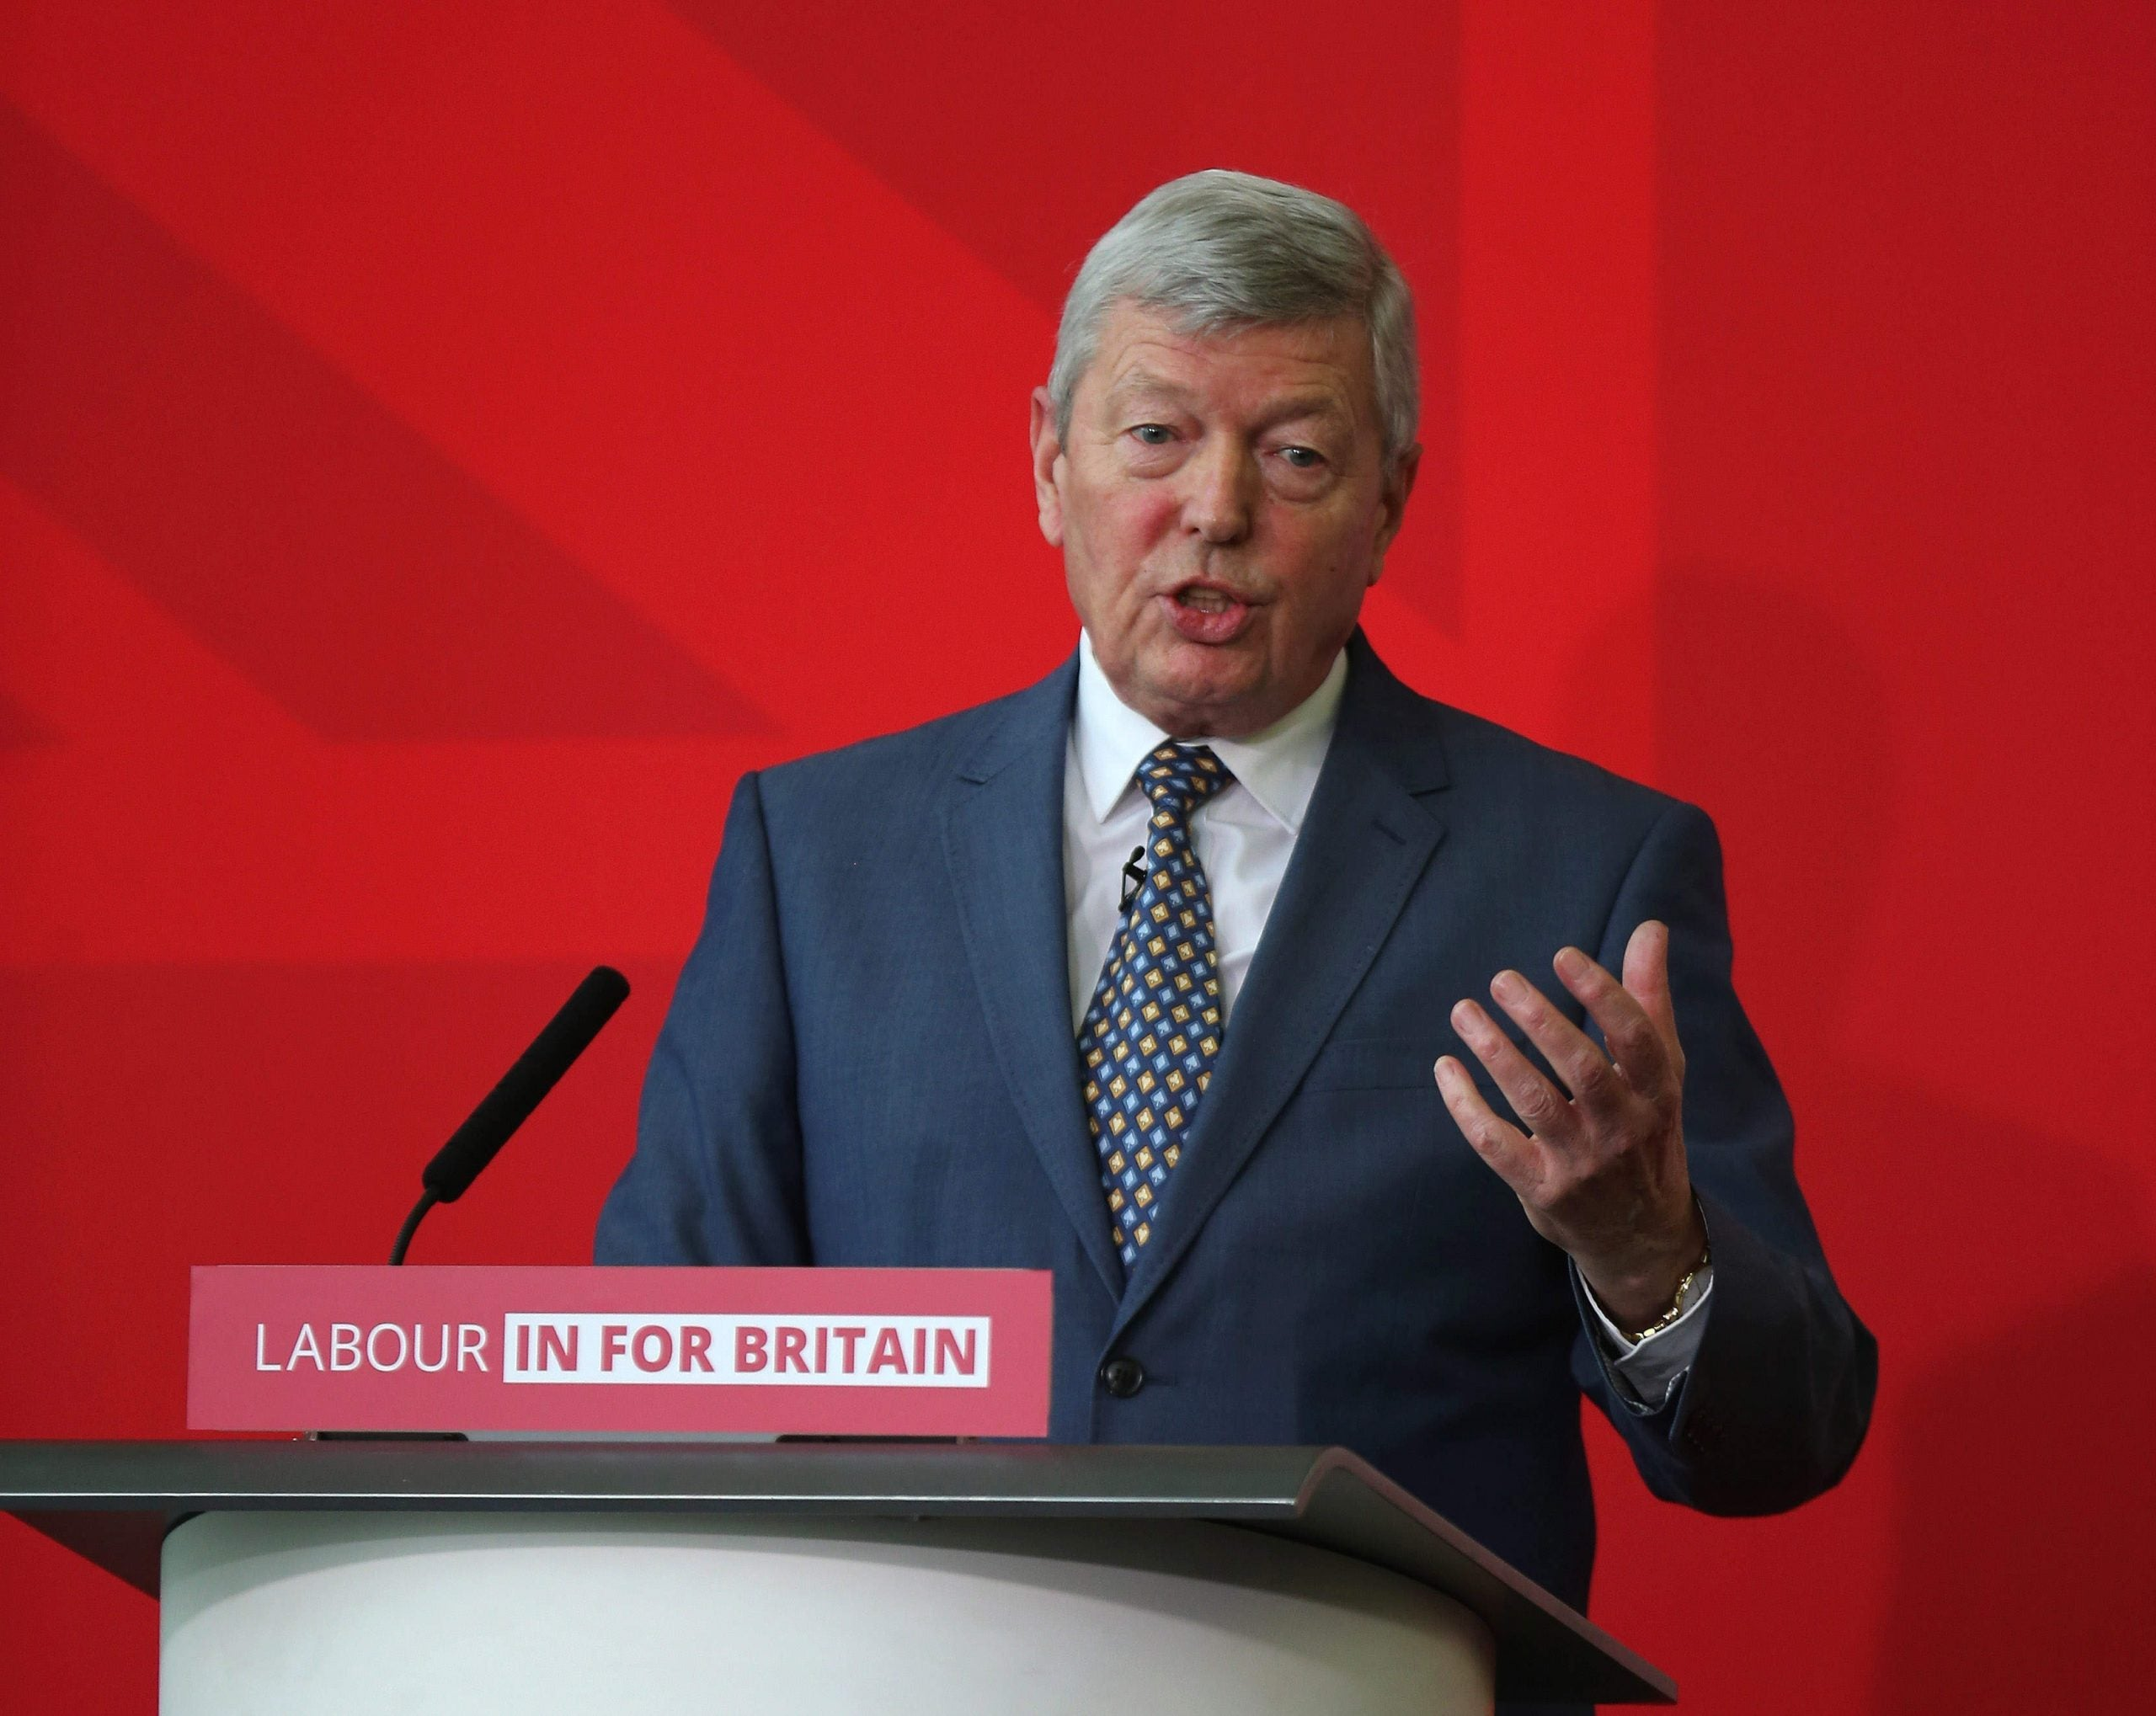 """Labour's thinking on Europe has to be about more than just """"staying In"""""""